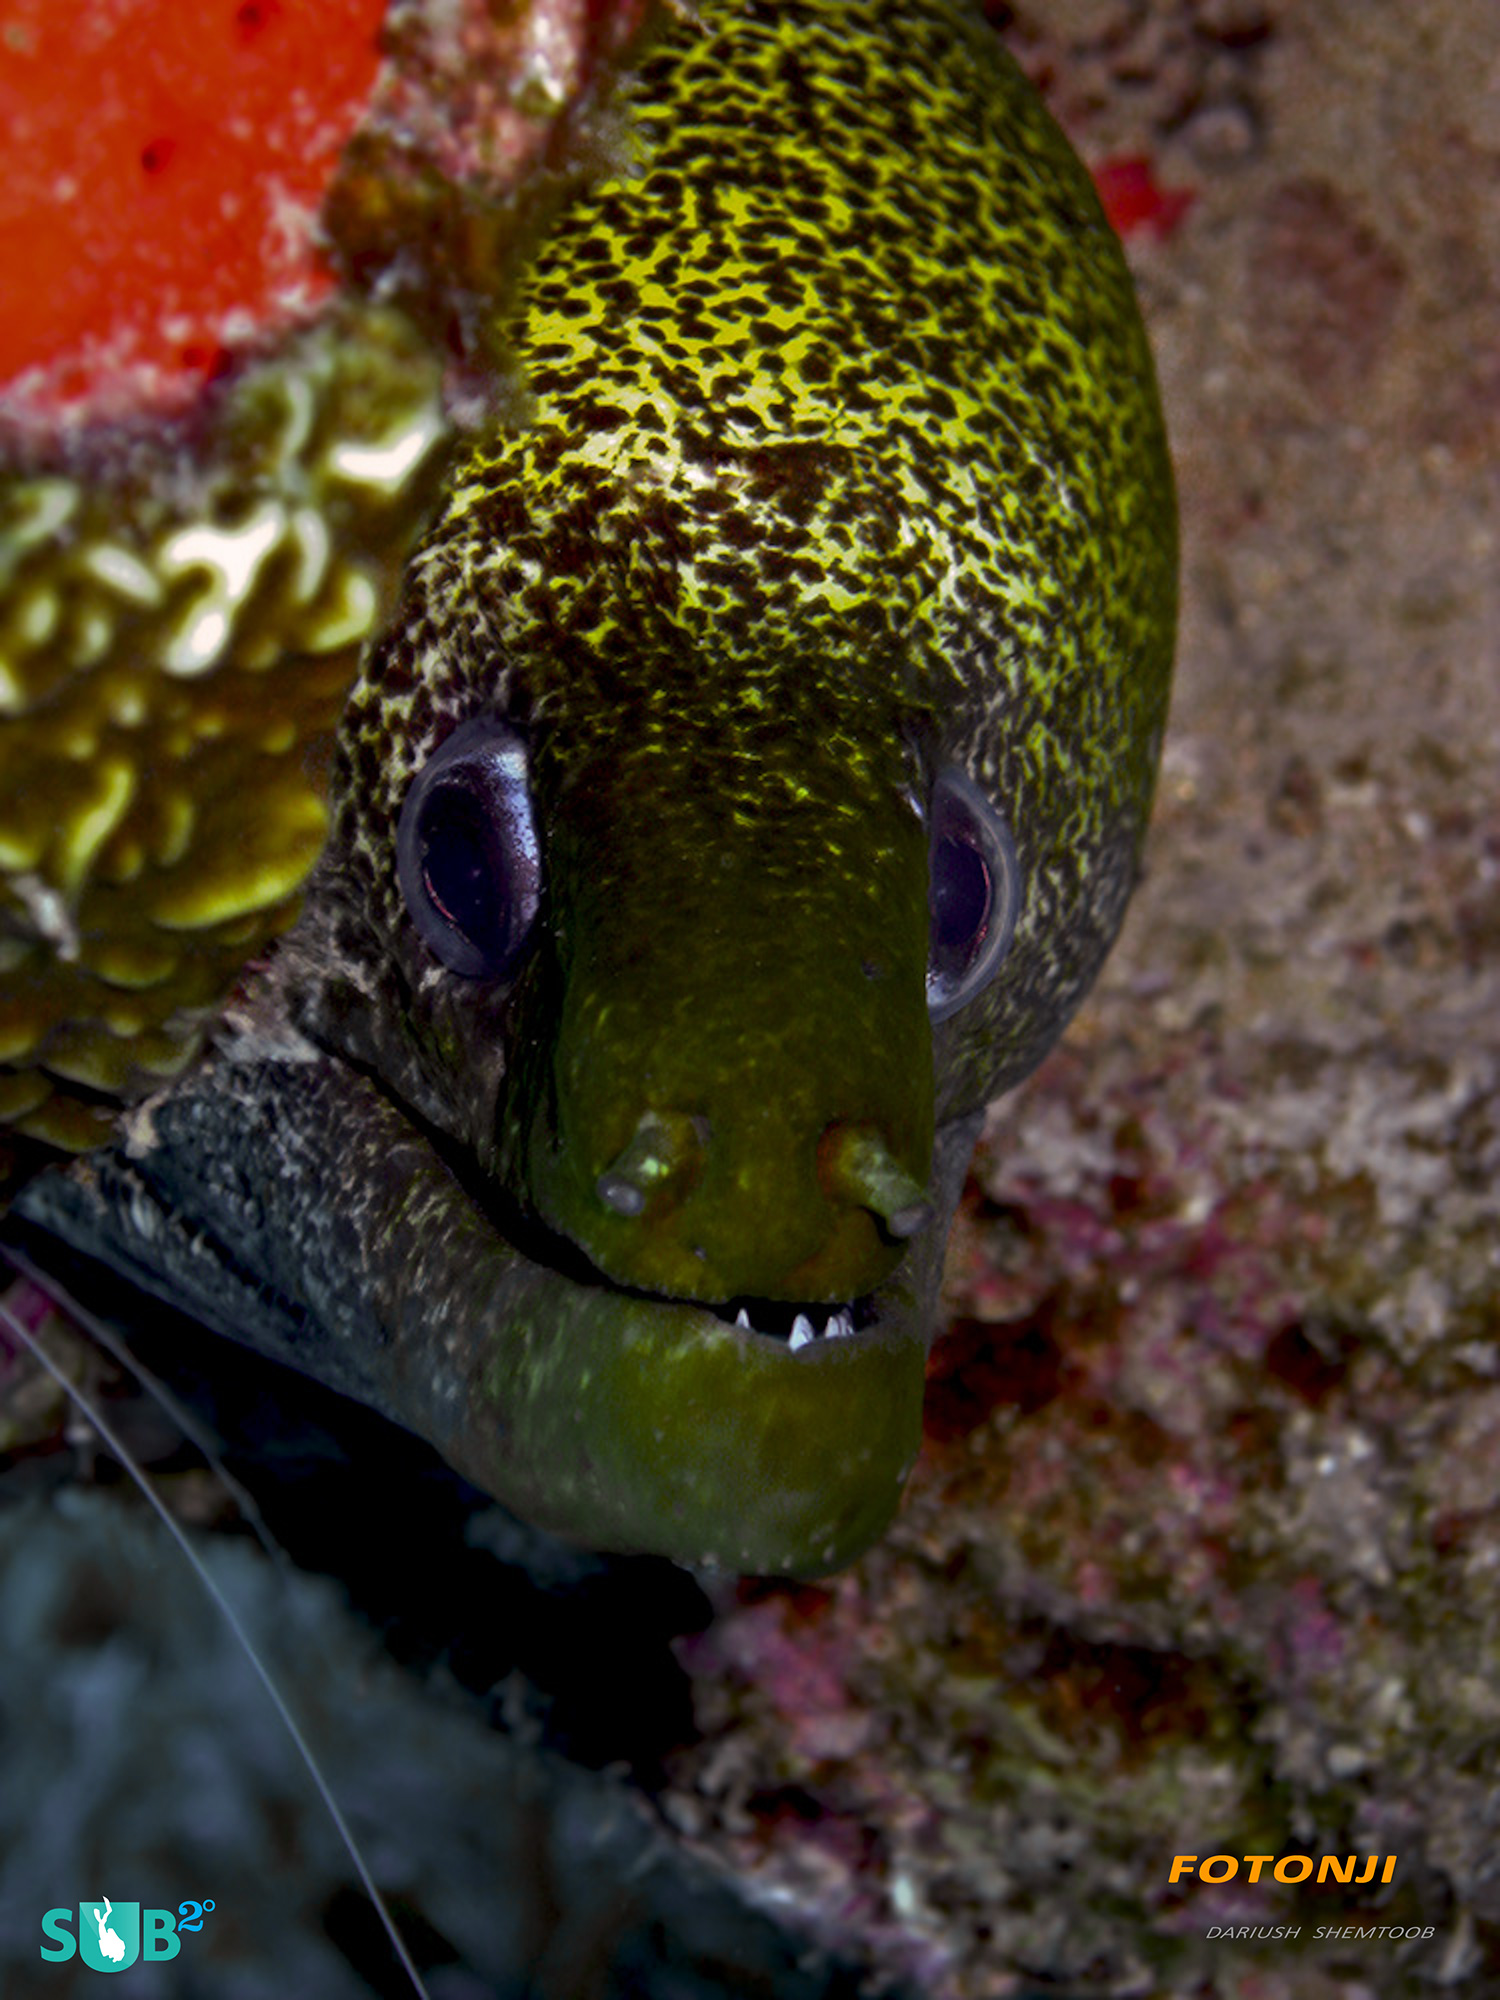 This curious moray eel seemed to constantly demand attention popping its head out and following the camera [1/60, f2.8, ISO250]